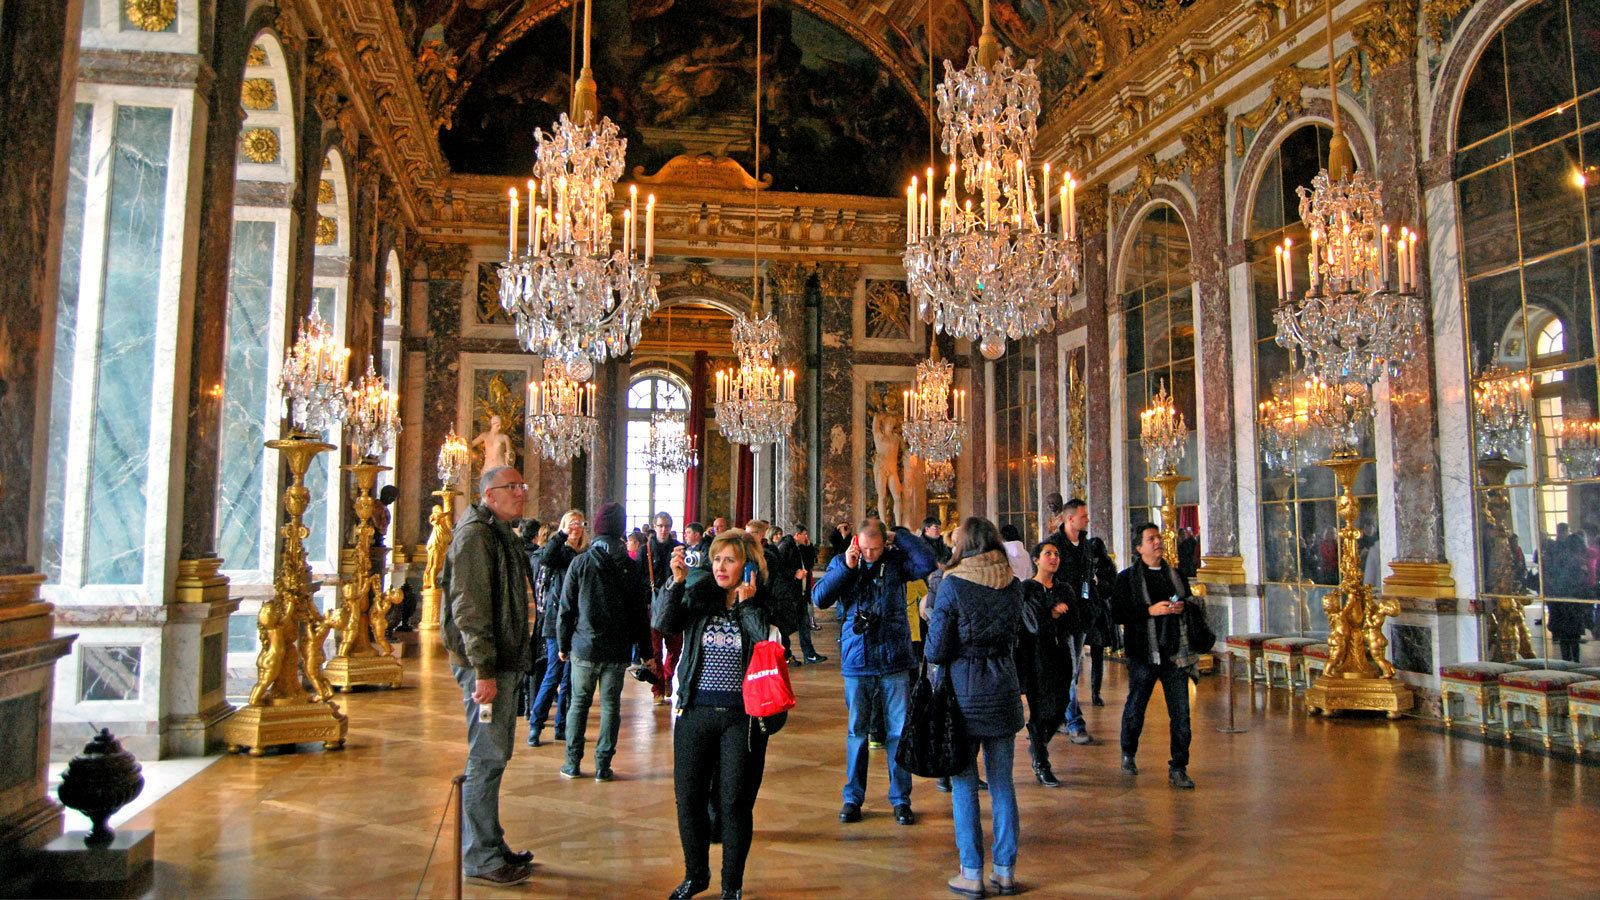 walking through the ornamented hallways inside the Versailles Palace in France